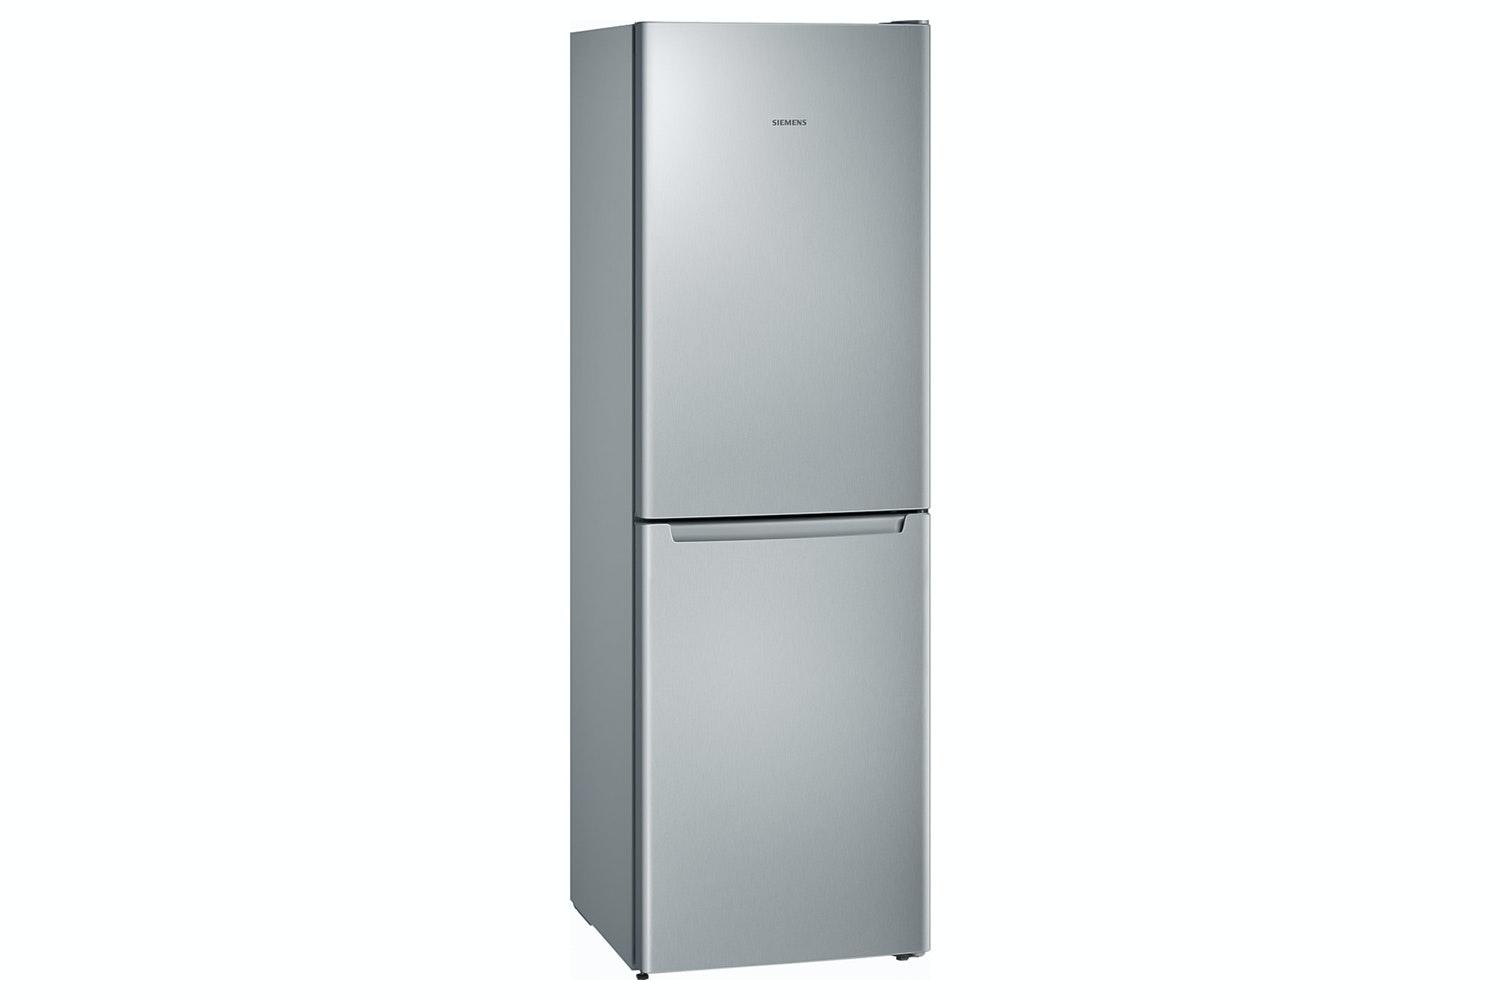 Siemens Freestanding Fridge Freezer | KG34NNL30G